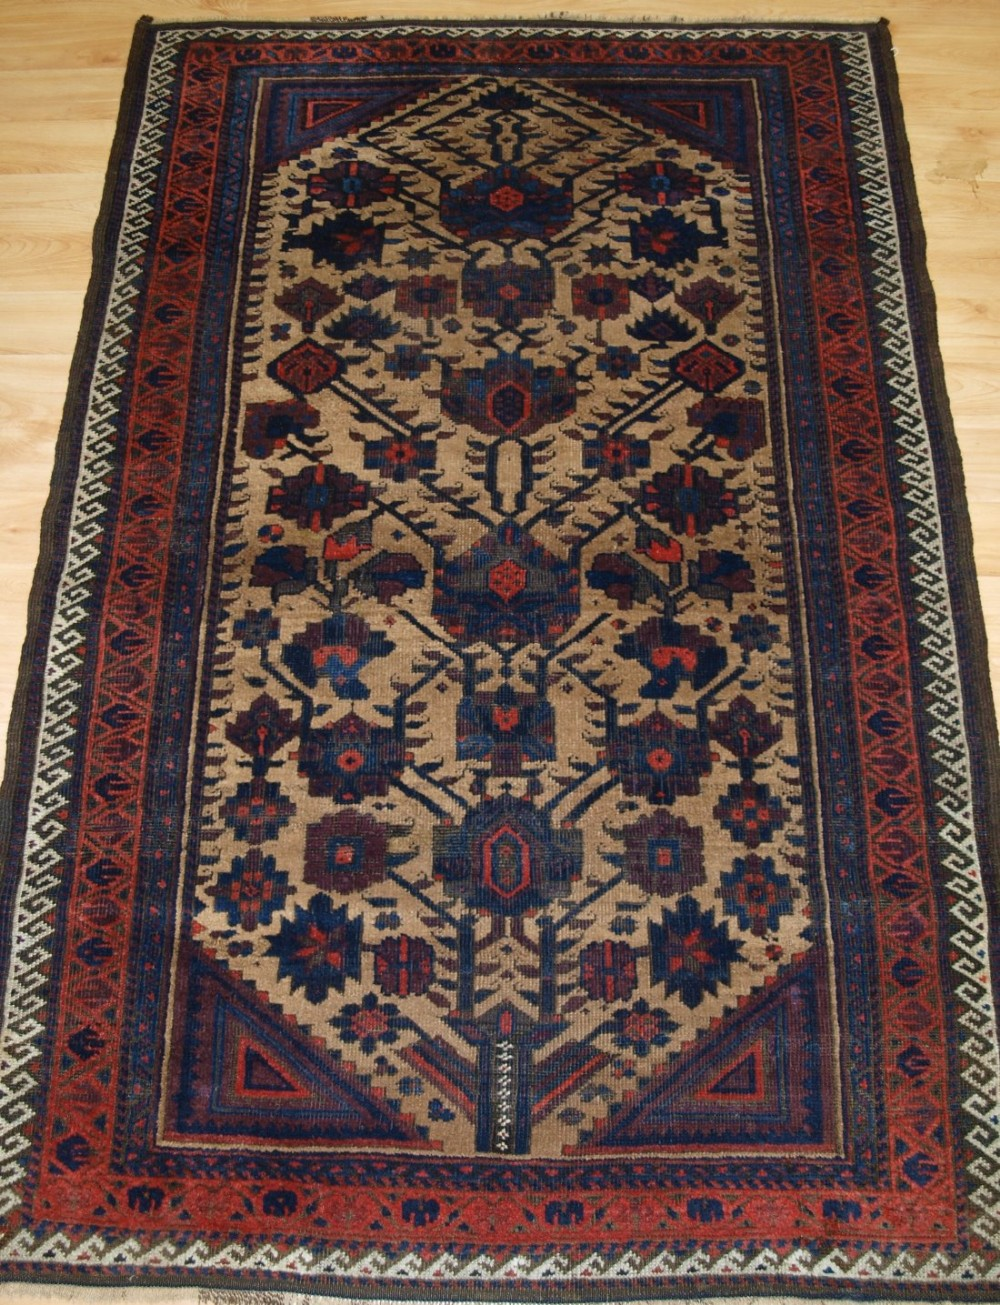 antique baluch rug from ferdows region camel ground classic design circa 1900